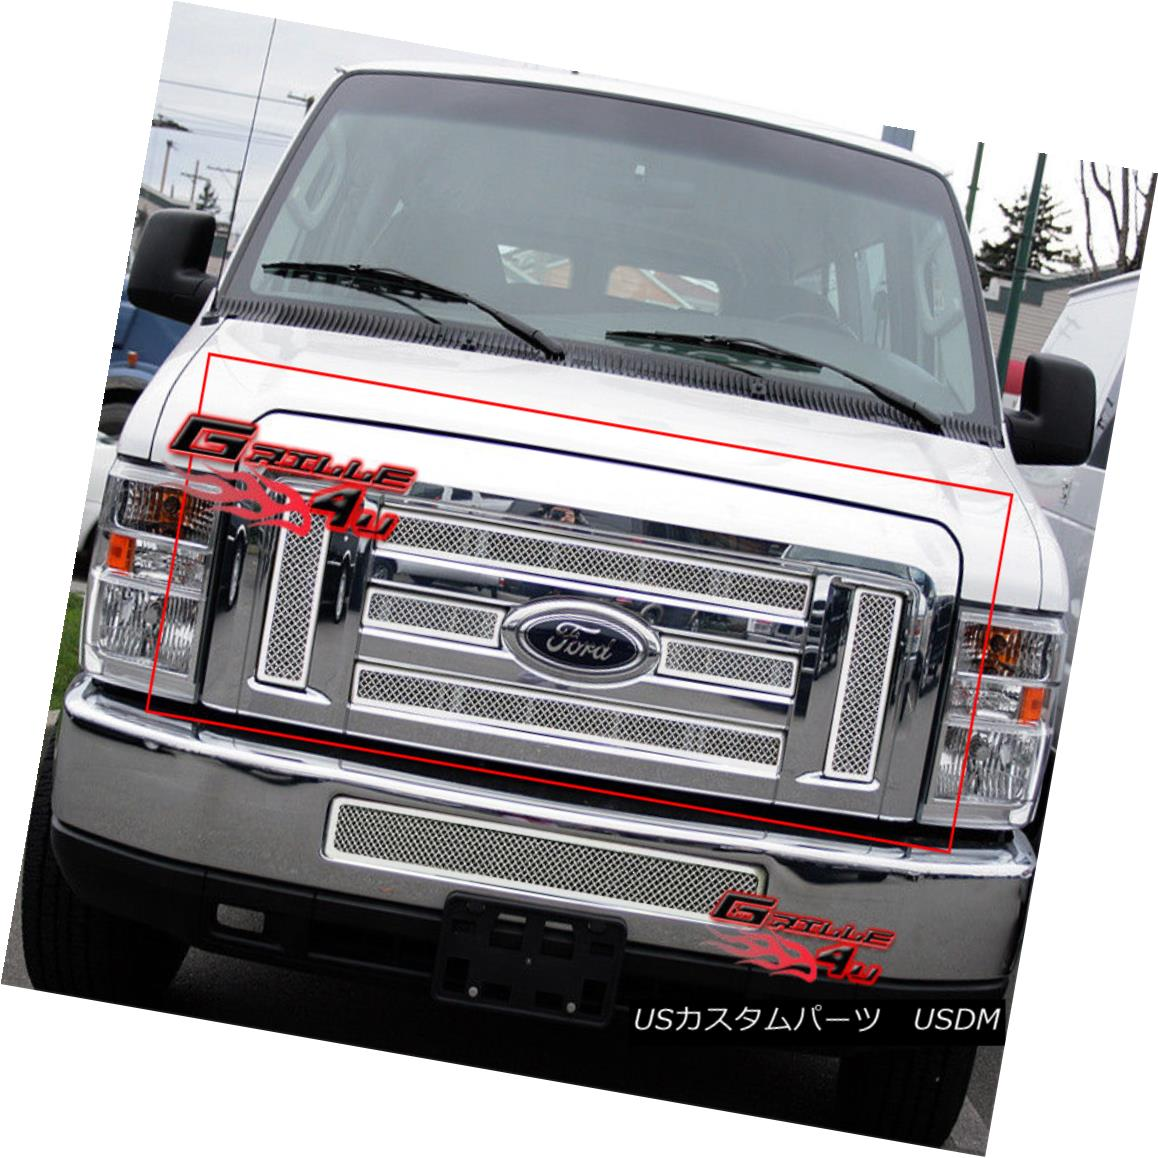 グリル For 08-11 Ford Econoline Van/E-Series Stainless Mesh Grille 08-11 Ford Econoline Van / Eシリーズステンレスメッシュグリル